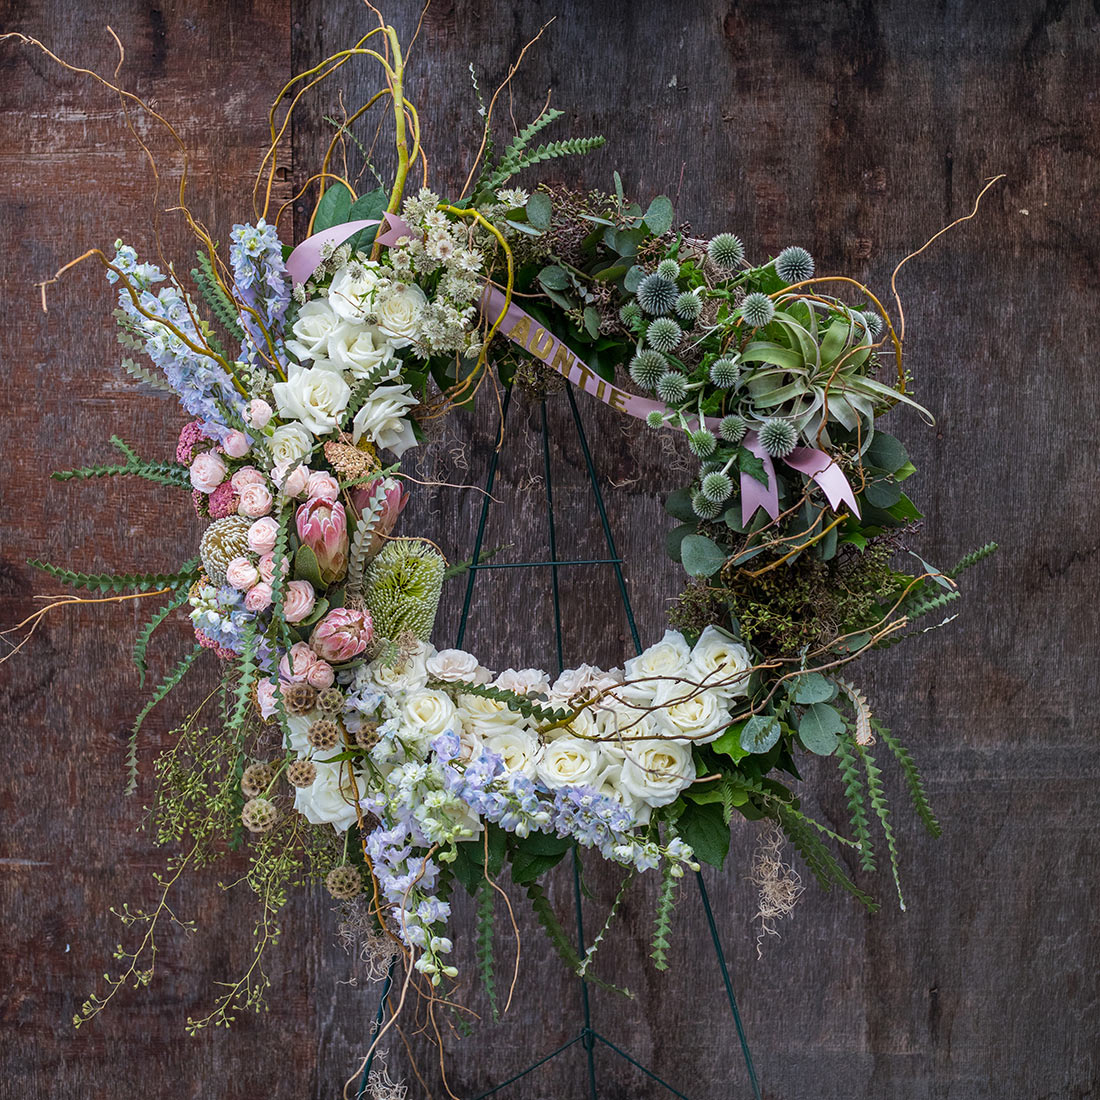 An image of a white and pink rose floral funeral wreath